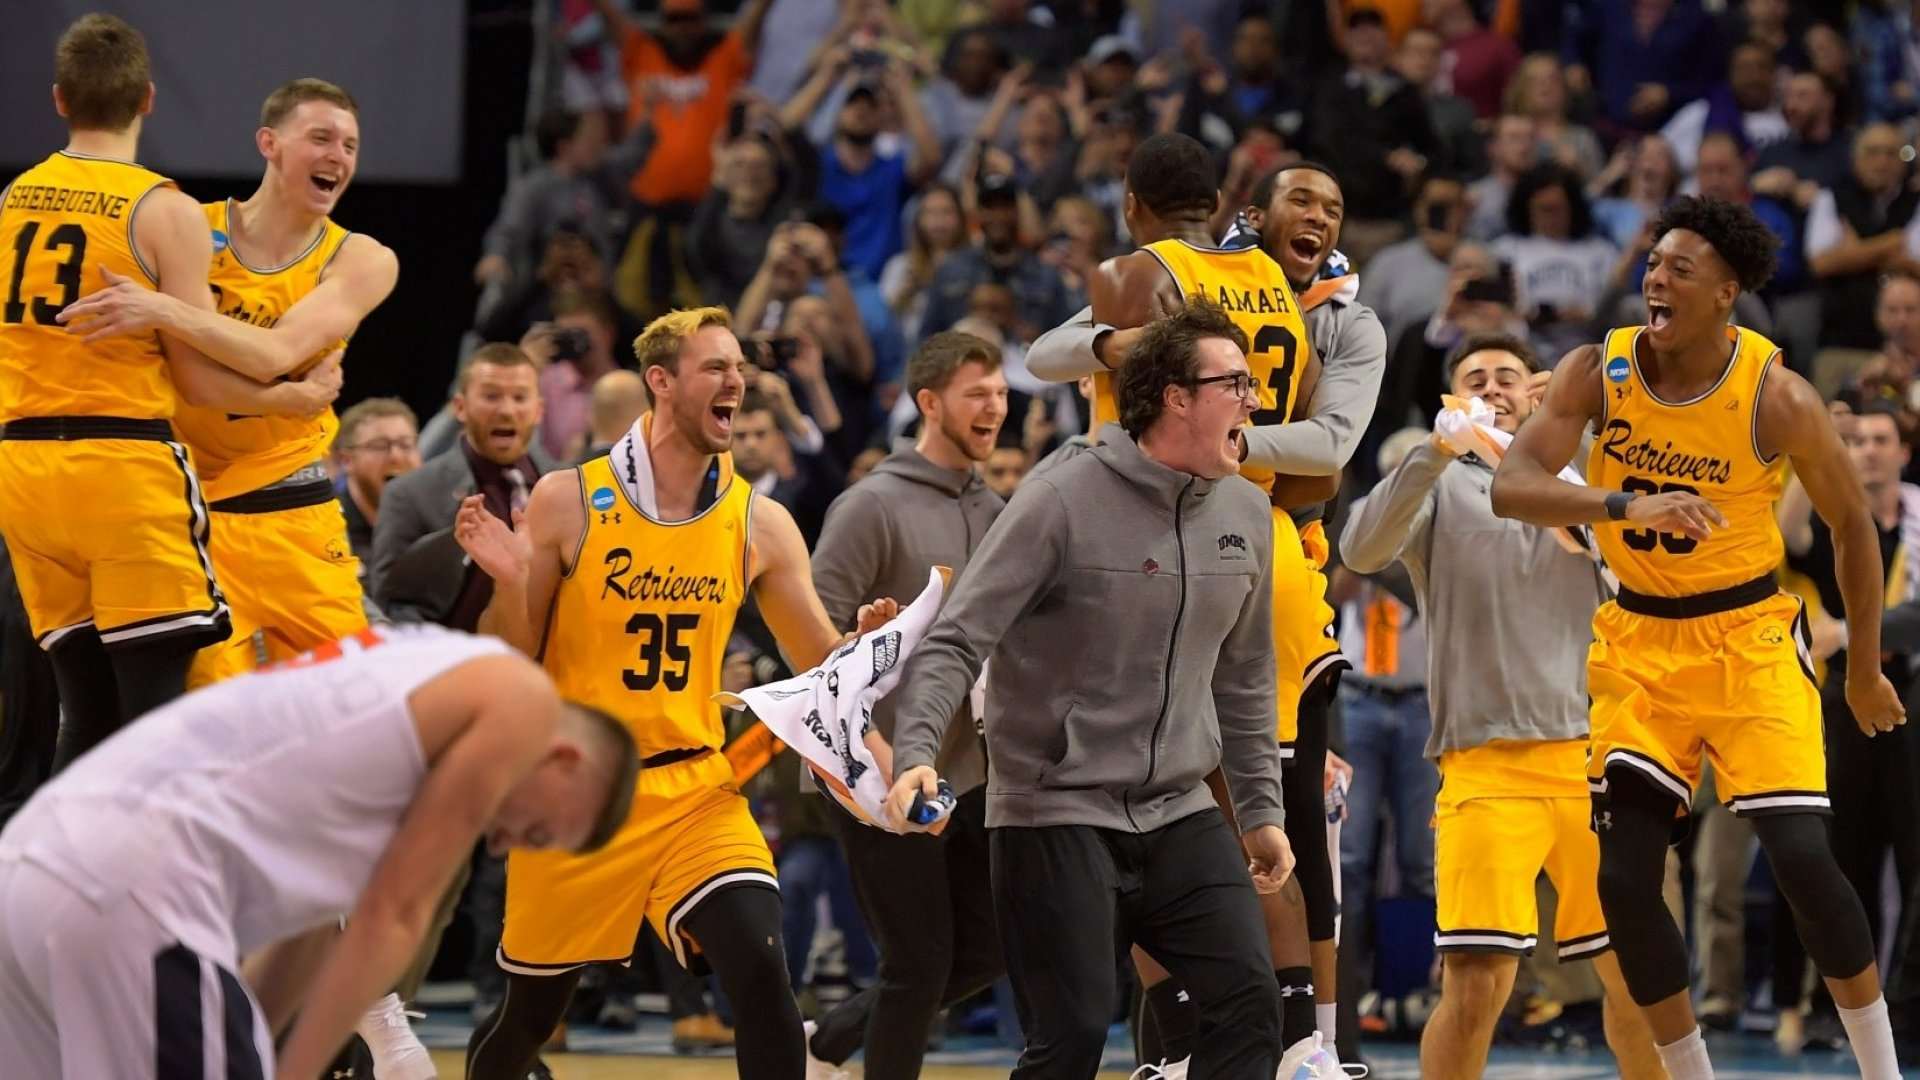 UMBC Won the Biggest Upset in NCAA History. Then They Praised the Chess Team